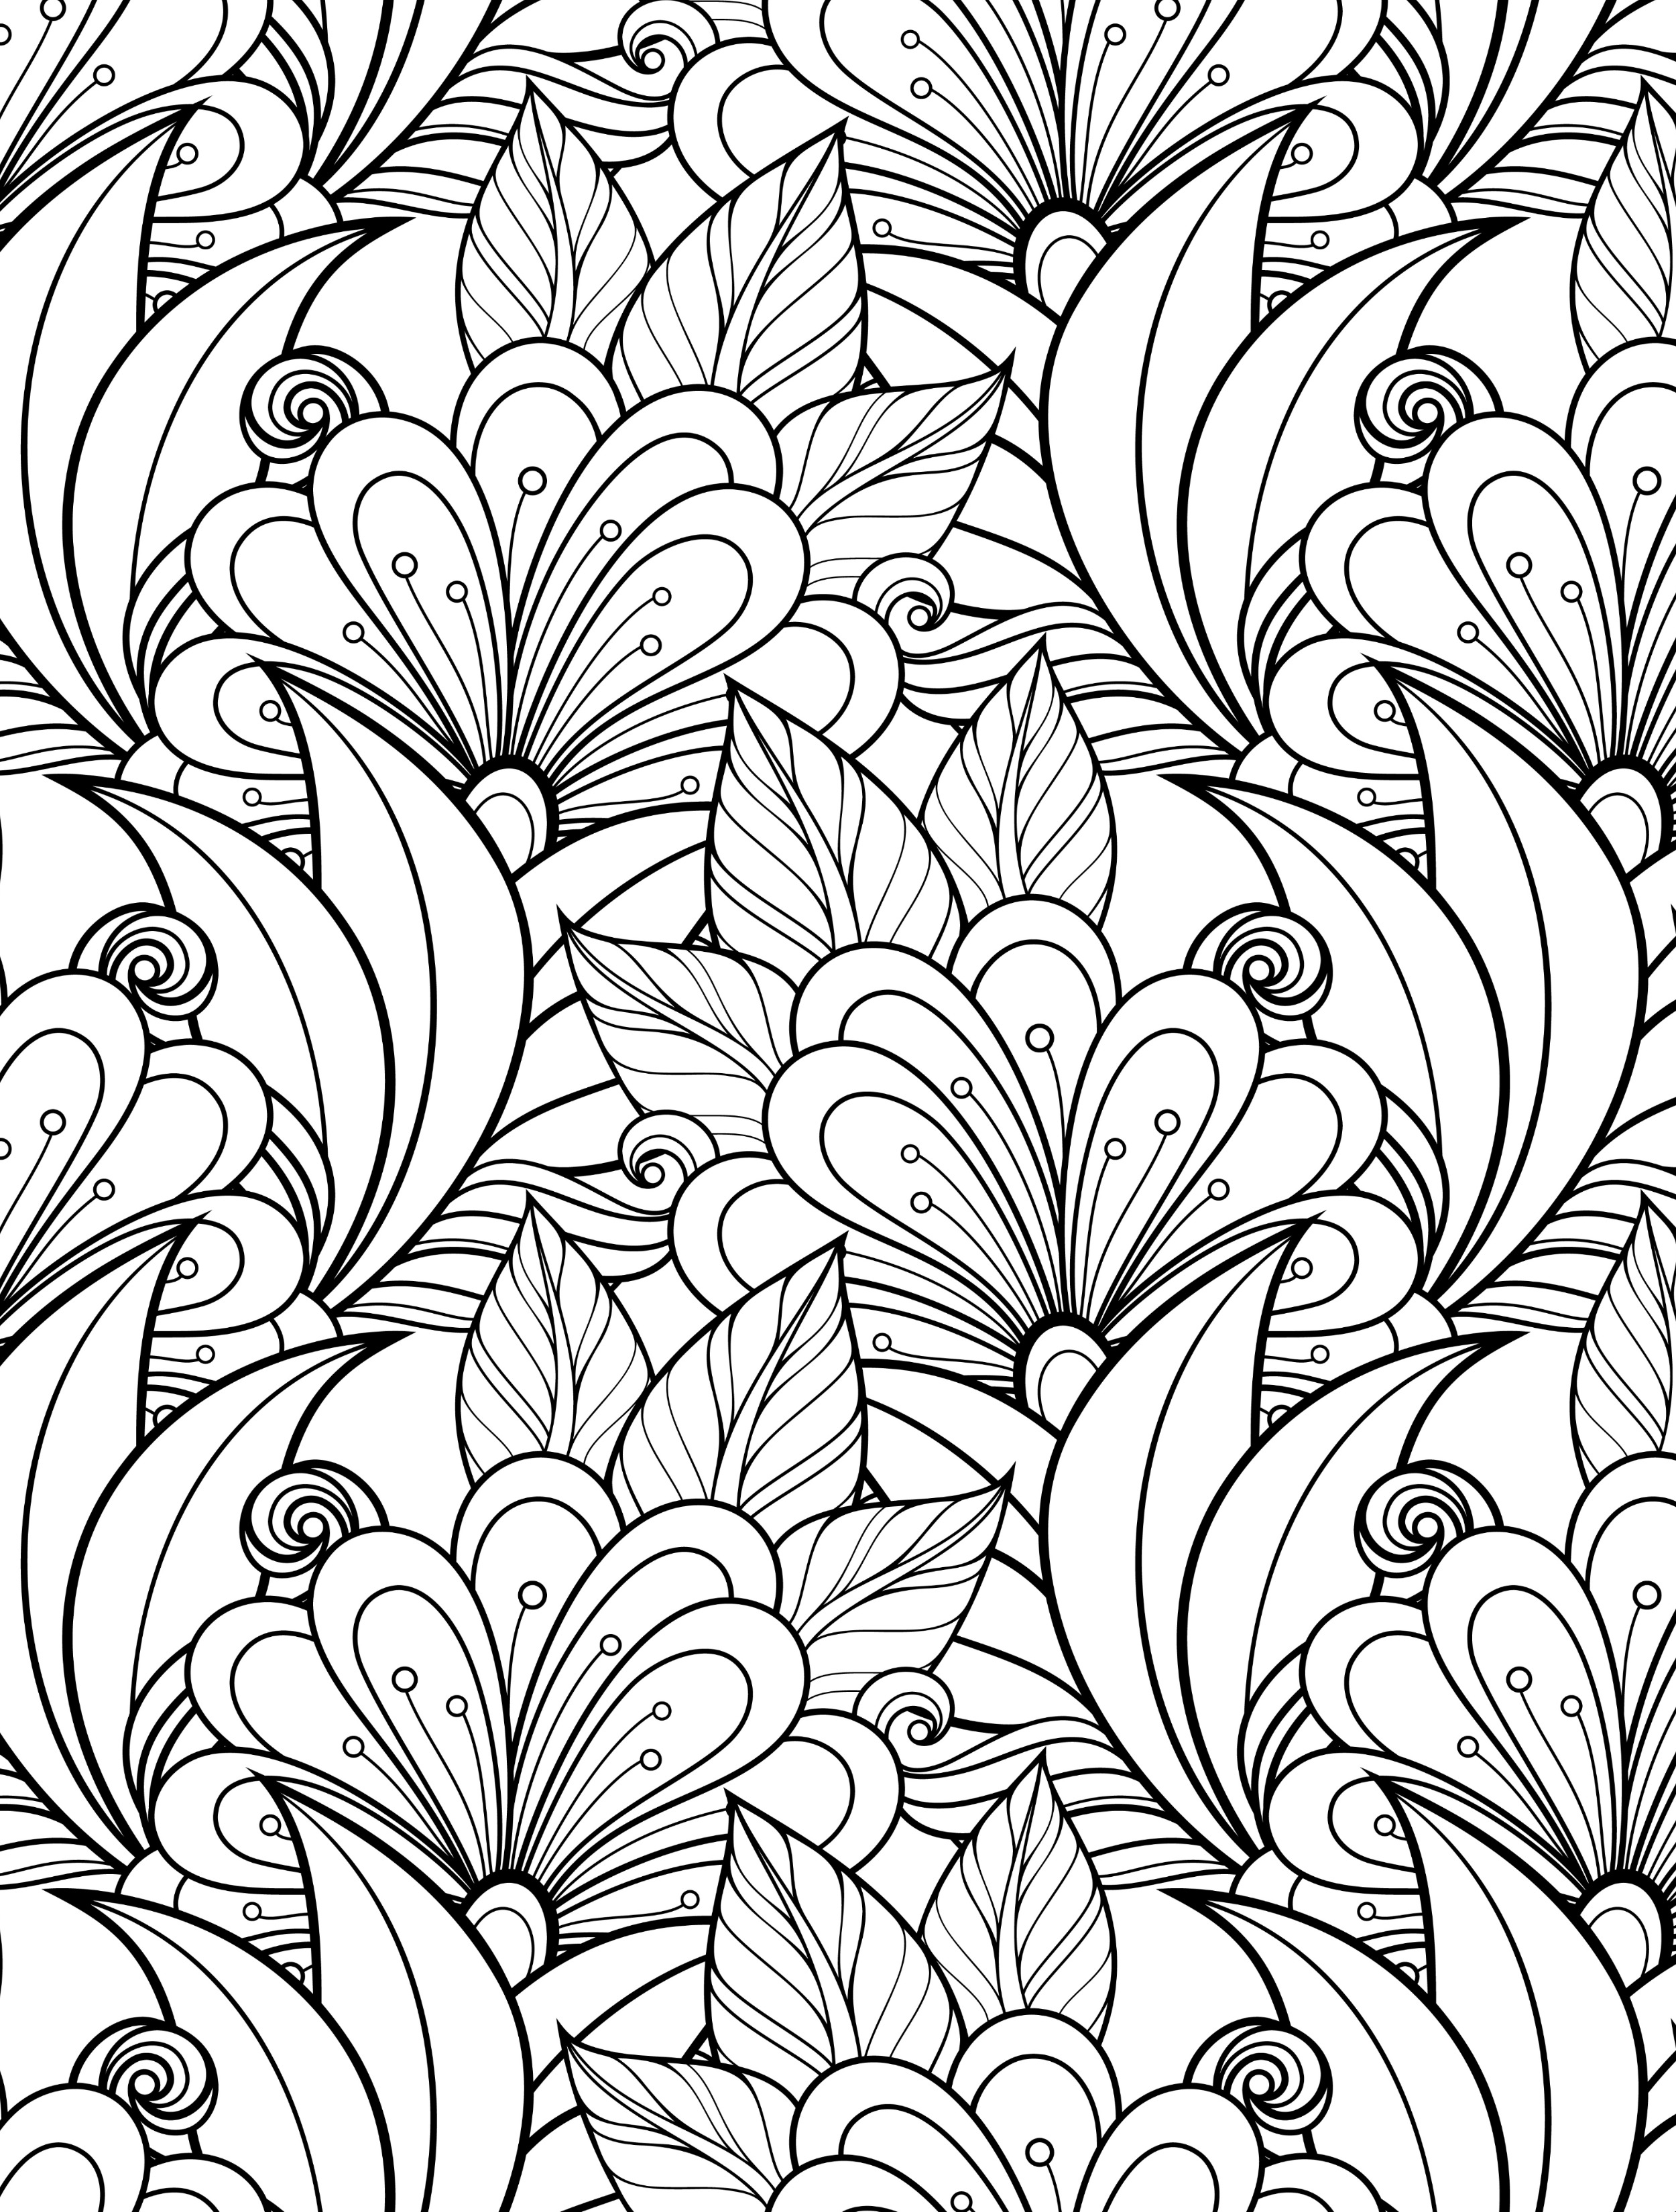 pattern coloring pages for adults 25 coloring pages including mandalas geometric designs rug coloring for pattern pages adults